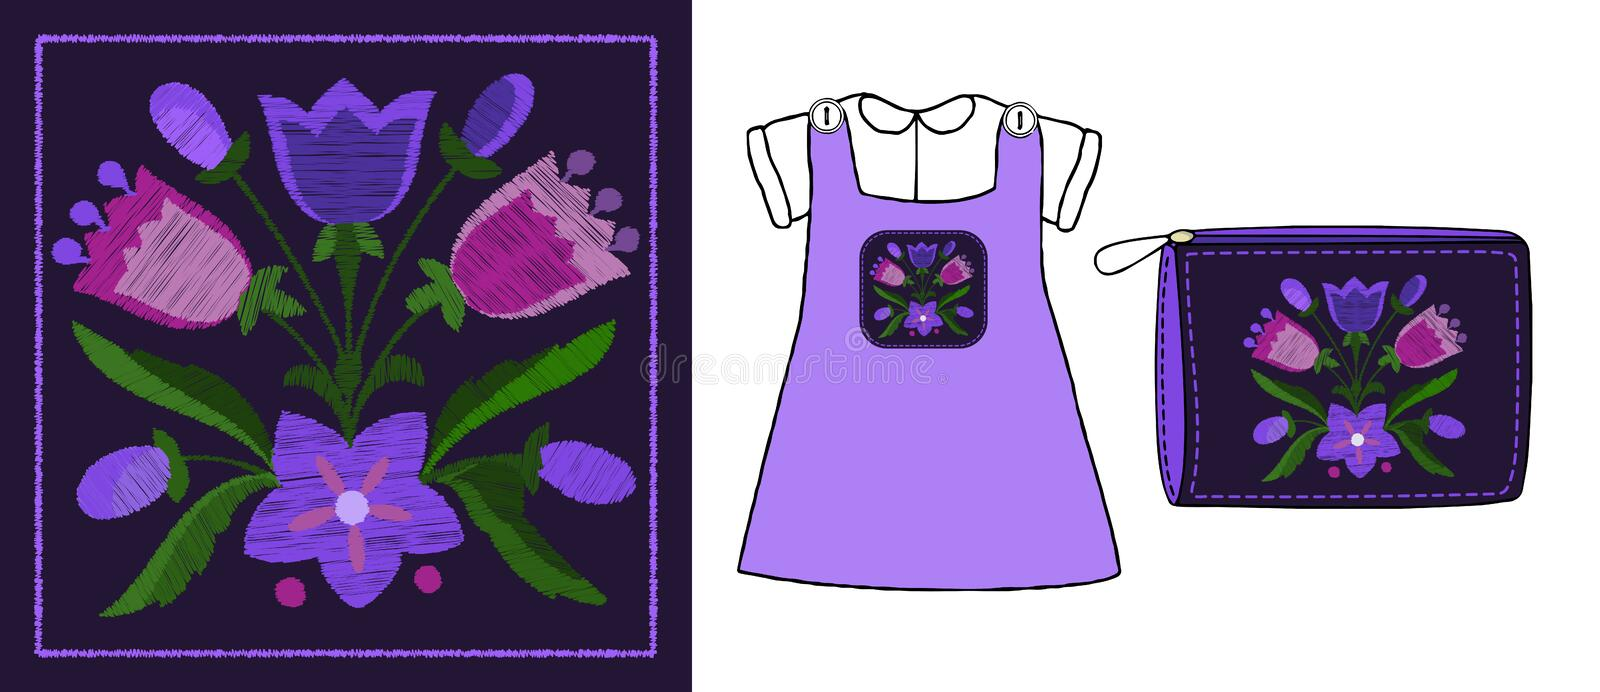 Stylized embroidery of a bouquet of bells royalty free illustration